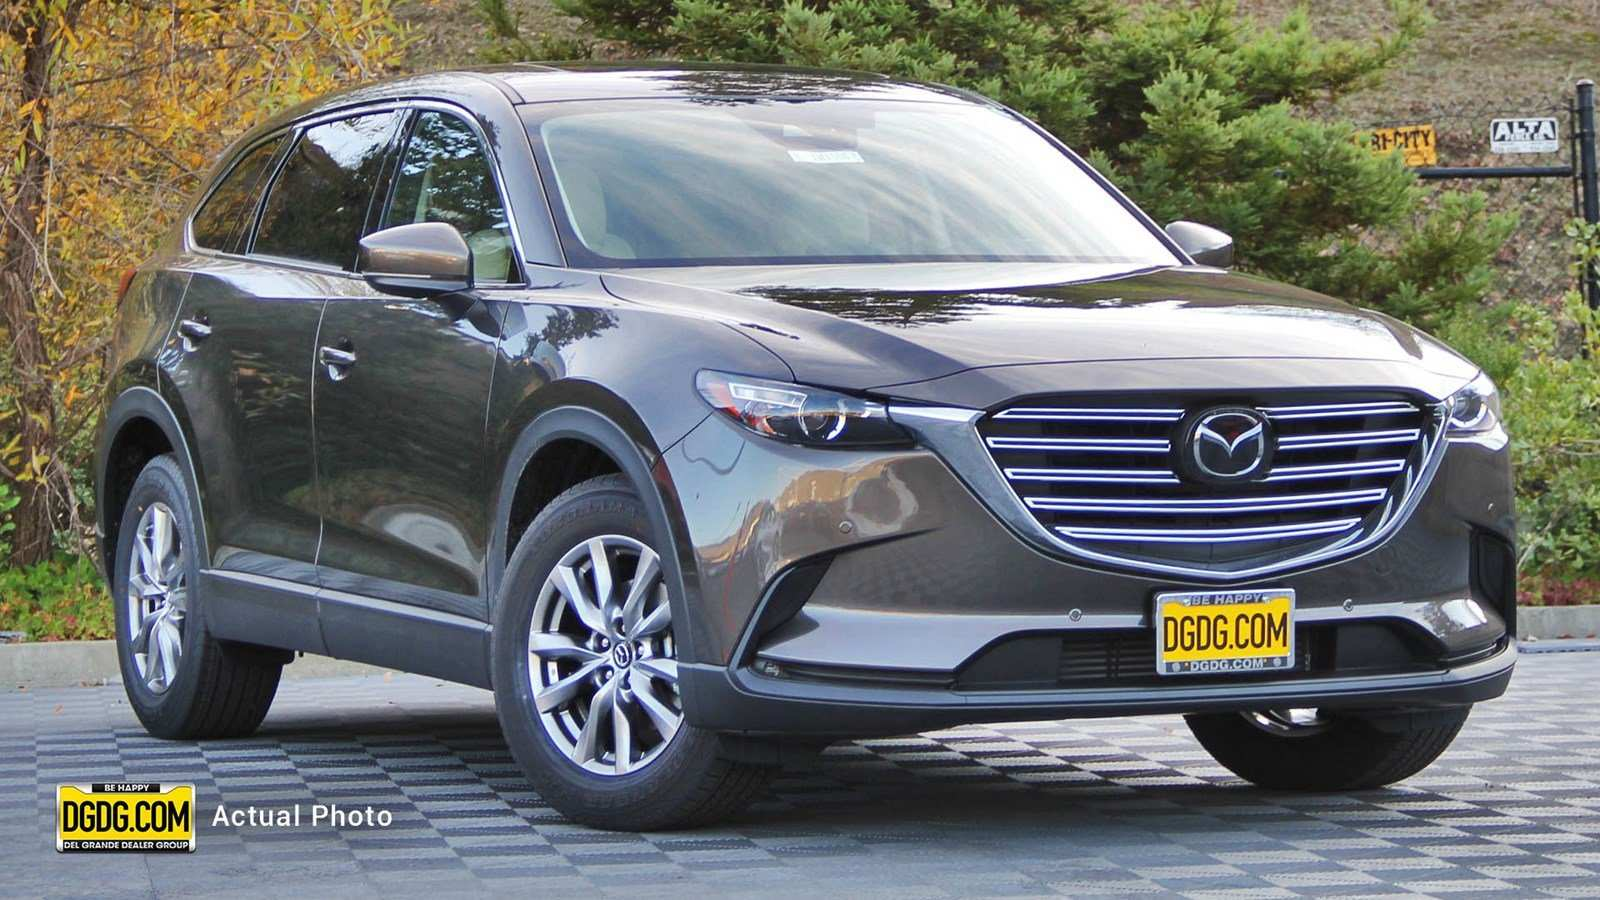 29 Great 2019 Mazda Cx 9 Overview for 2019 Mazda Cx 9